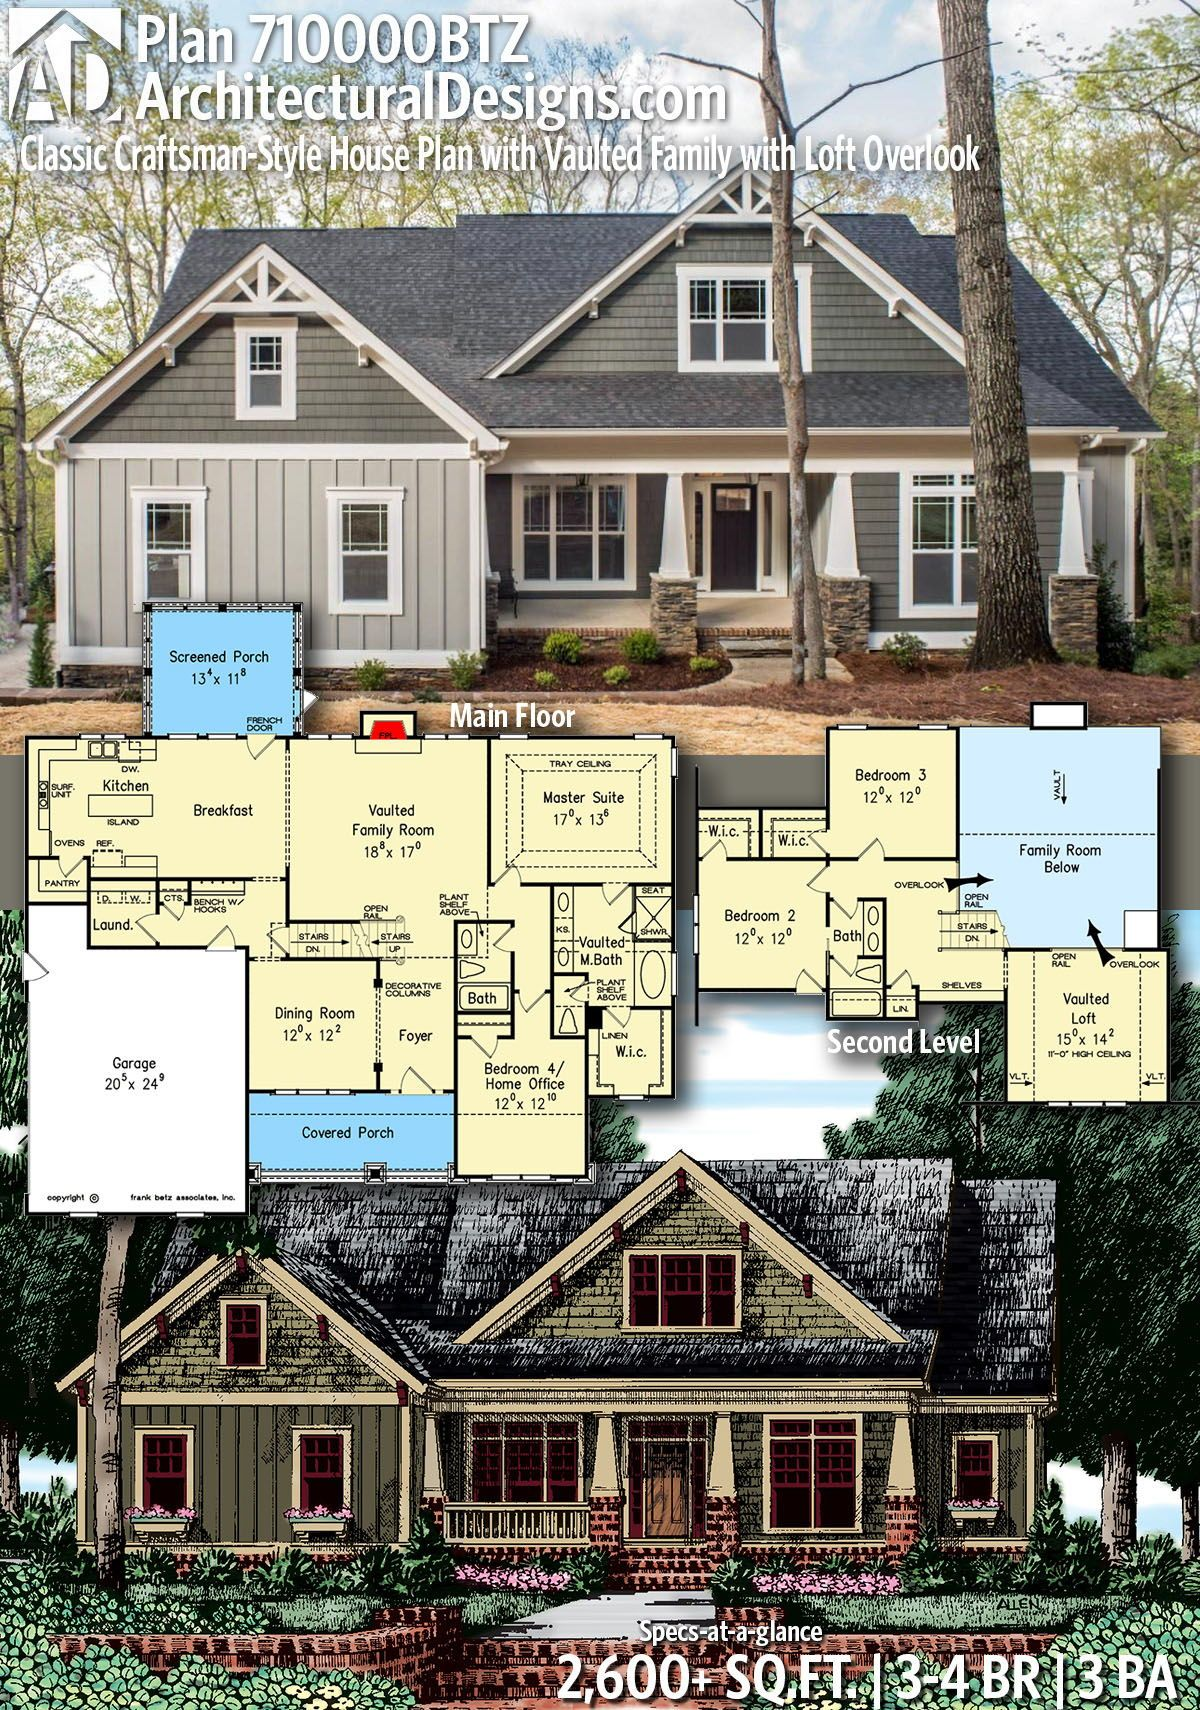 Plan 710000btz Classic Craftsman Style House Plan With Vaulted Family With Loft Overlook Craftsman Style House Plans Craftsman House Plans Modular Home Plans